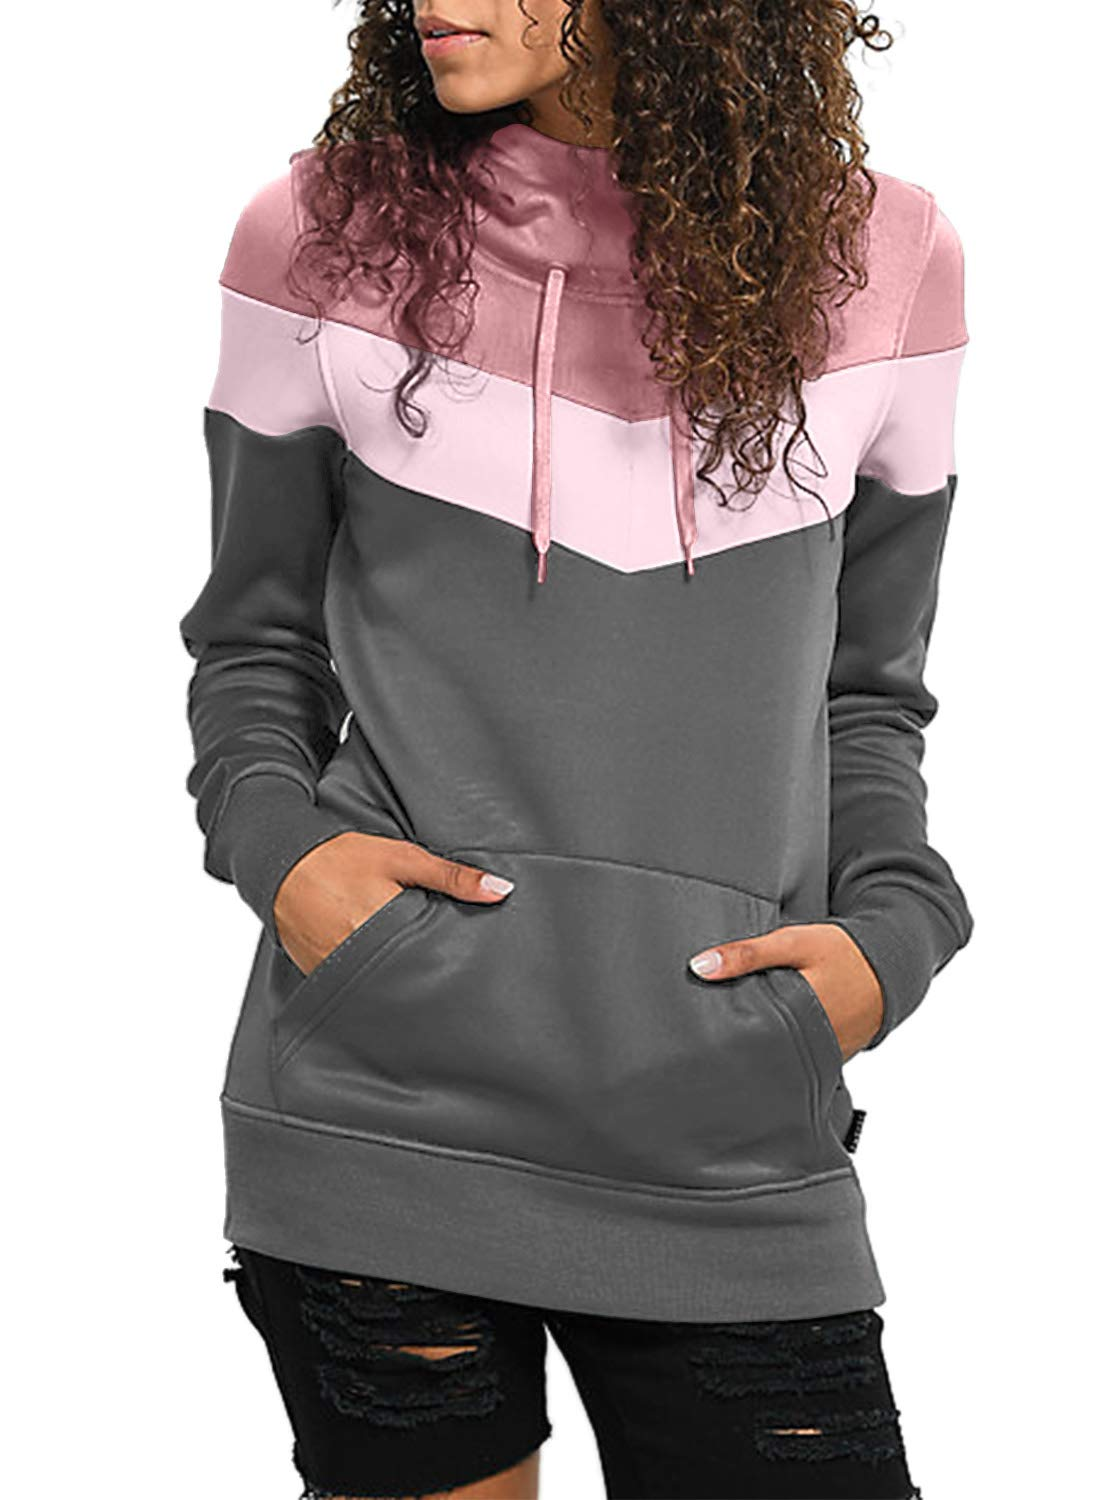 Lovezesent Women's Plus Size Color Block Lightweight Cotton Hoodie Pullover Sweatshirt Sport with Pocket Casual Long Sleeve Drawstring Hooded Tops for Jeans Grey 2XL